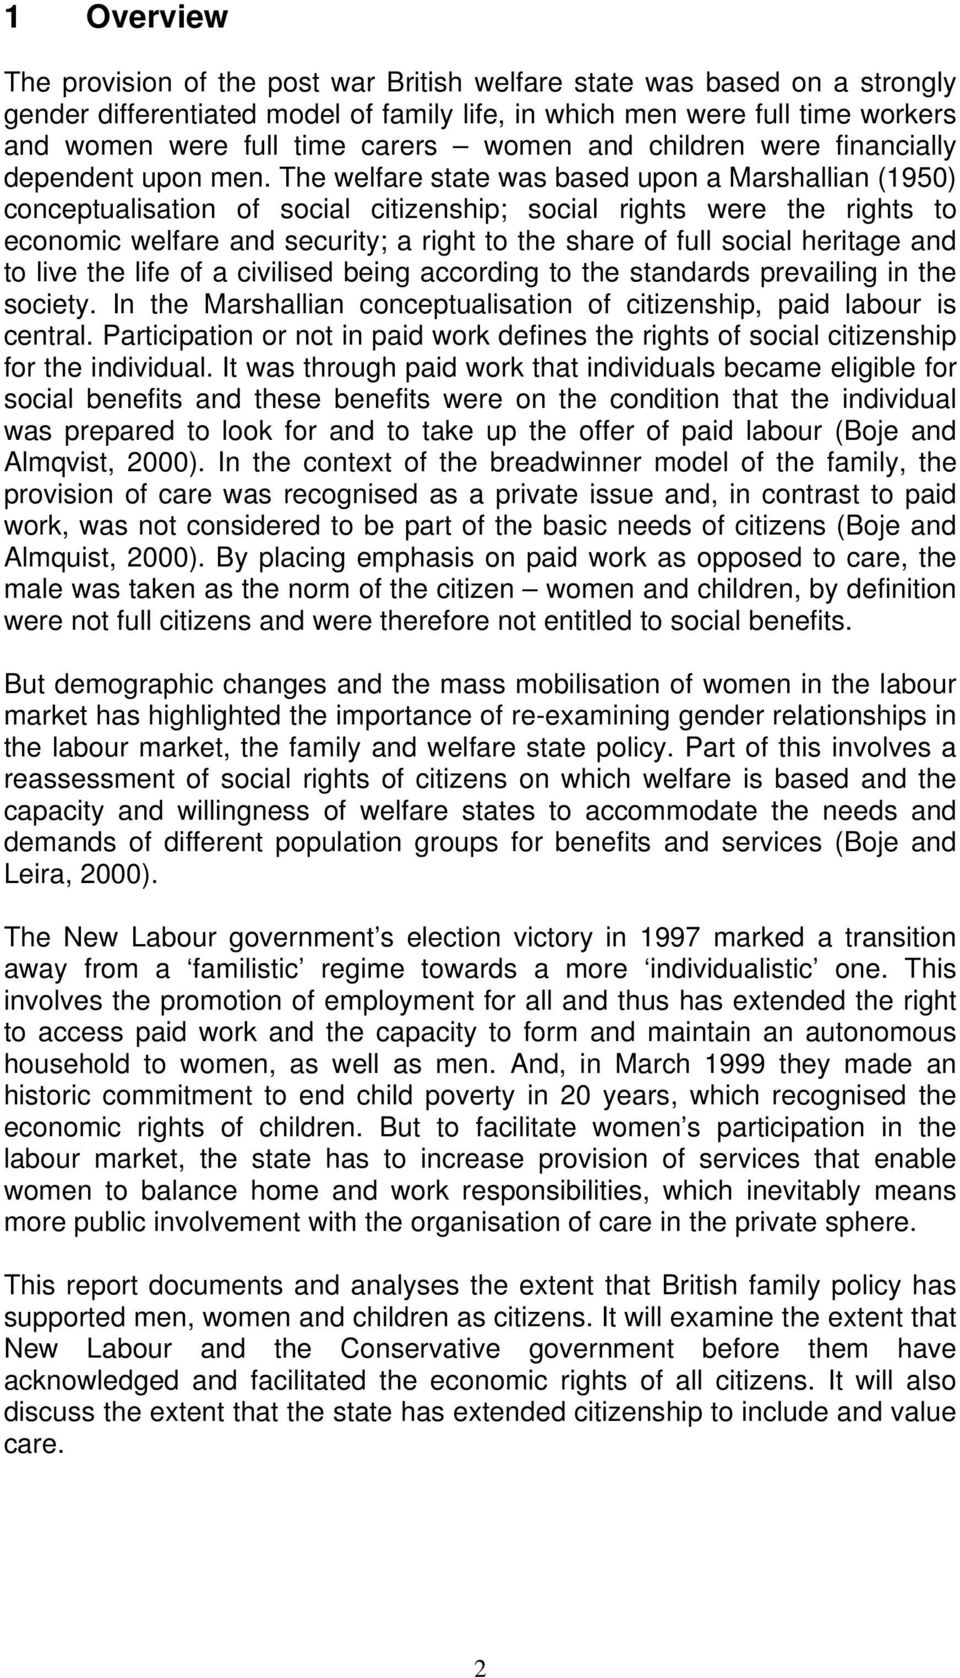 The welfare state was based upon a Marshallian (1950) conceptualisation of social citizenship; social rights were the rights to economic welfare and security; a right to the share of full social